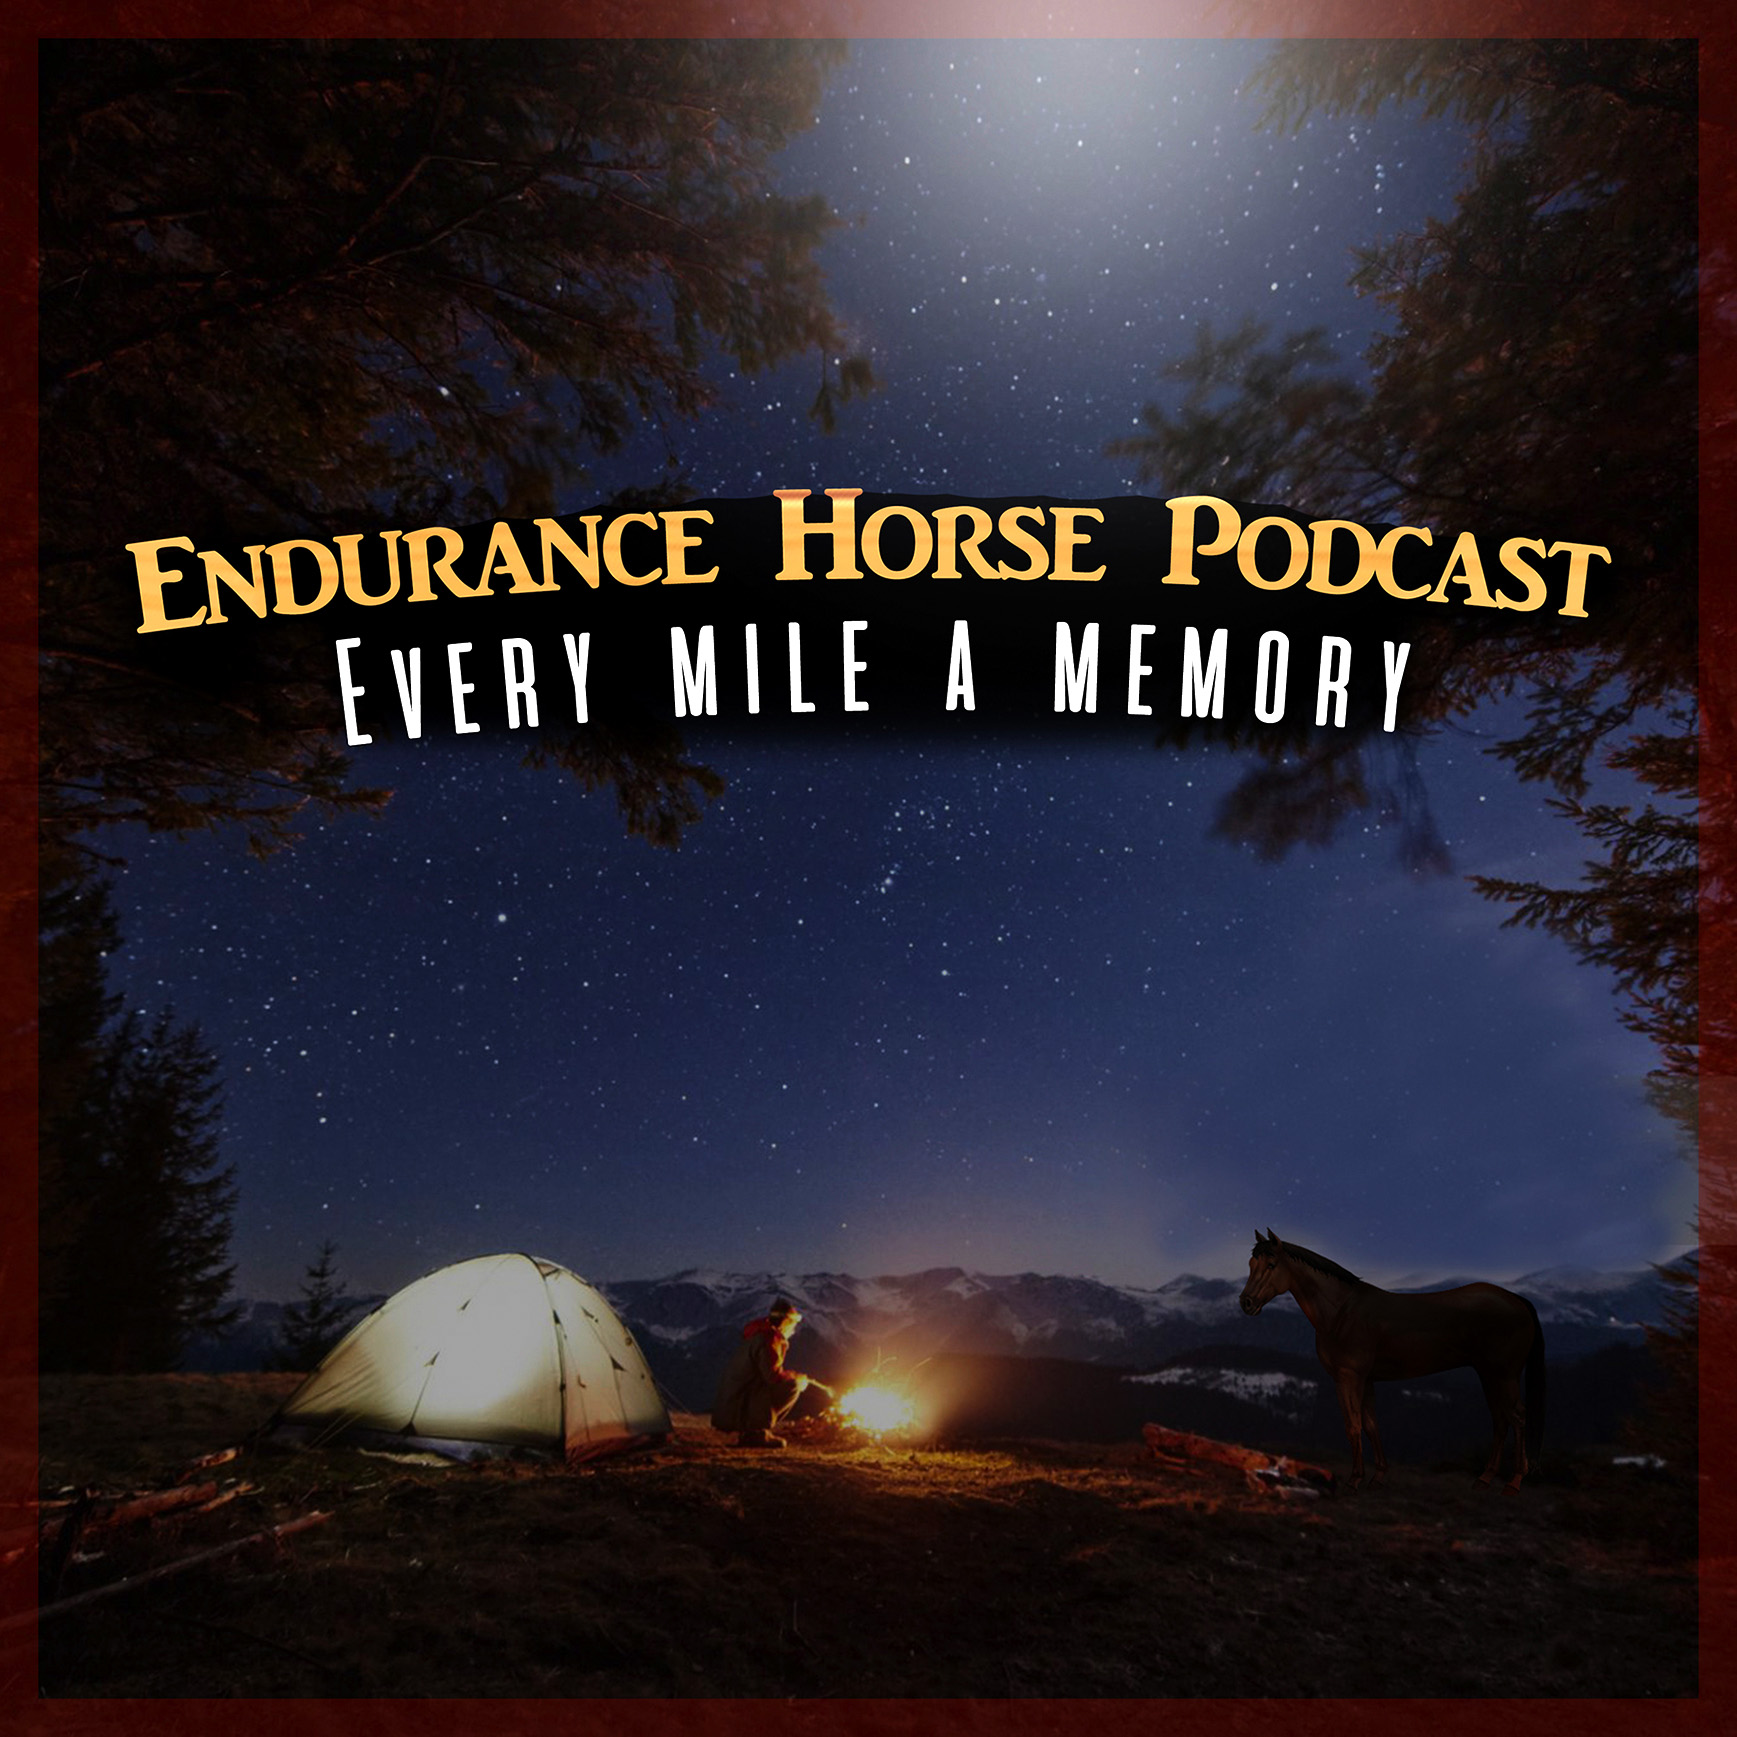 Endurance Horse Podcast